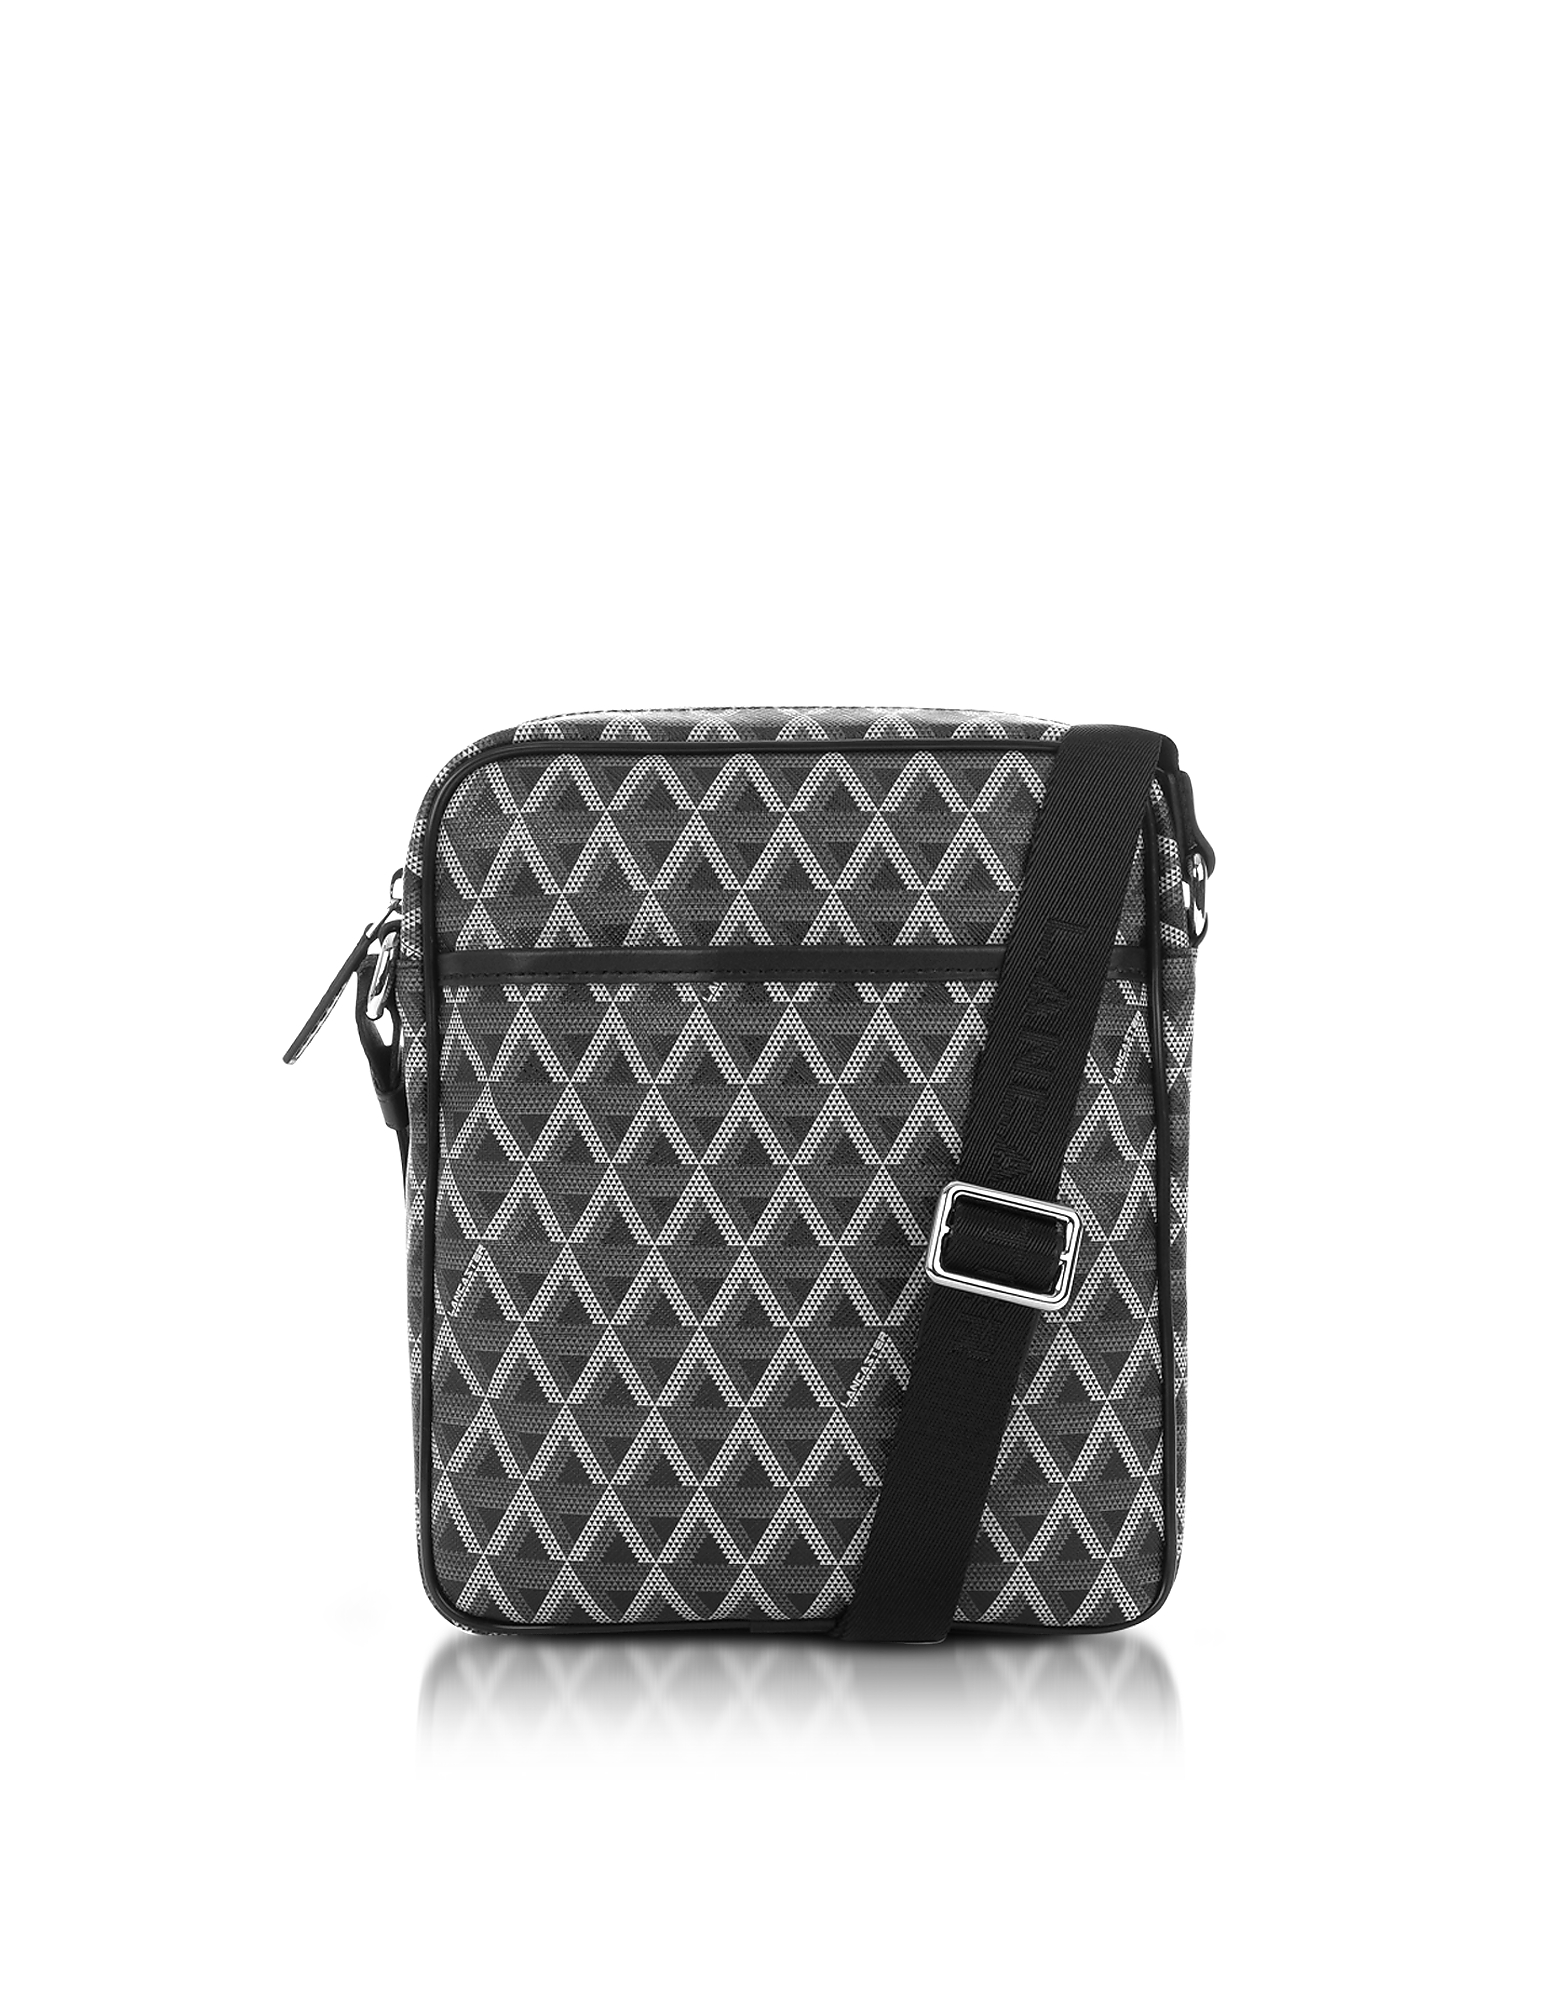 Ikon Borsa Crossbody in Canvas Stampato Nero e Pelle